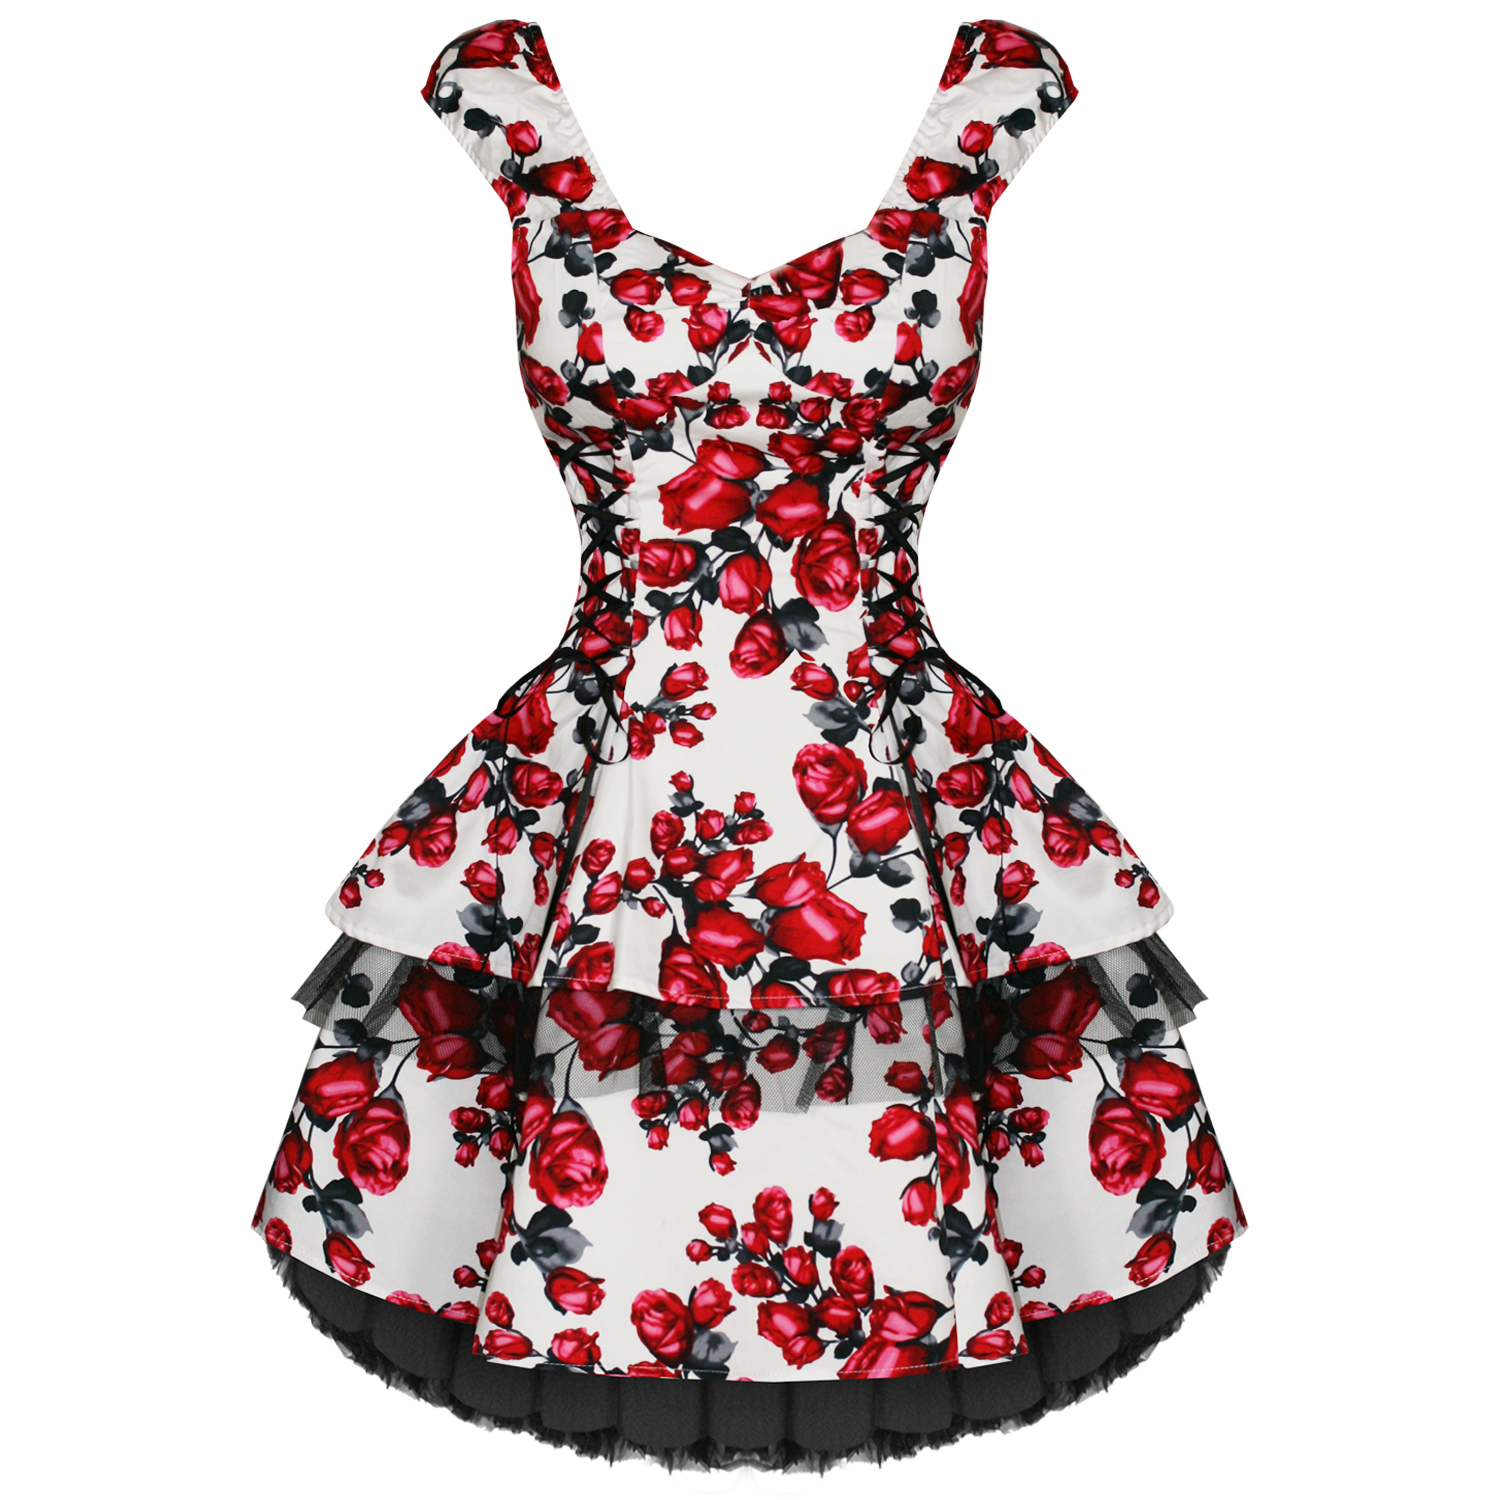 NEW LADIES WHITE PINK FLORAL RETRO VINTAGE 50S SWING PARTY PROM ...